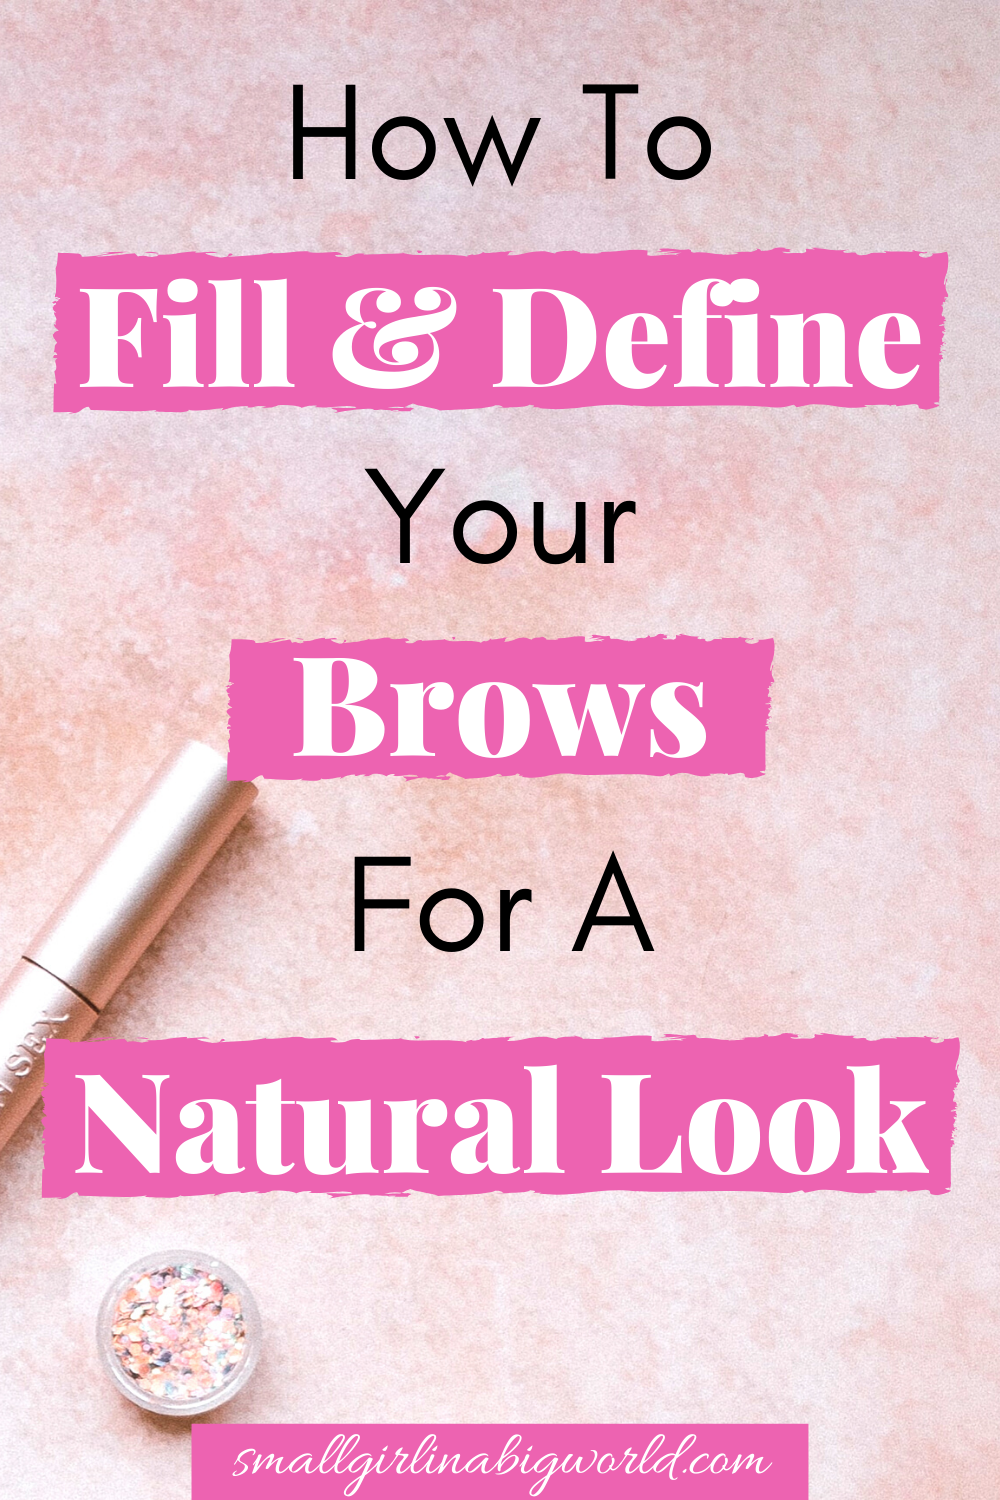 How To Fill & Define Your Brows For A Natural Look in 2020 ...